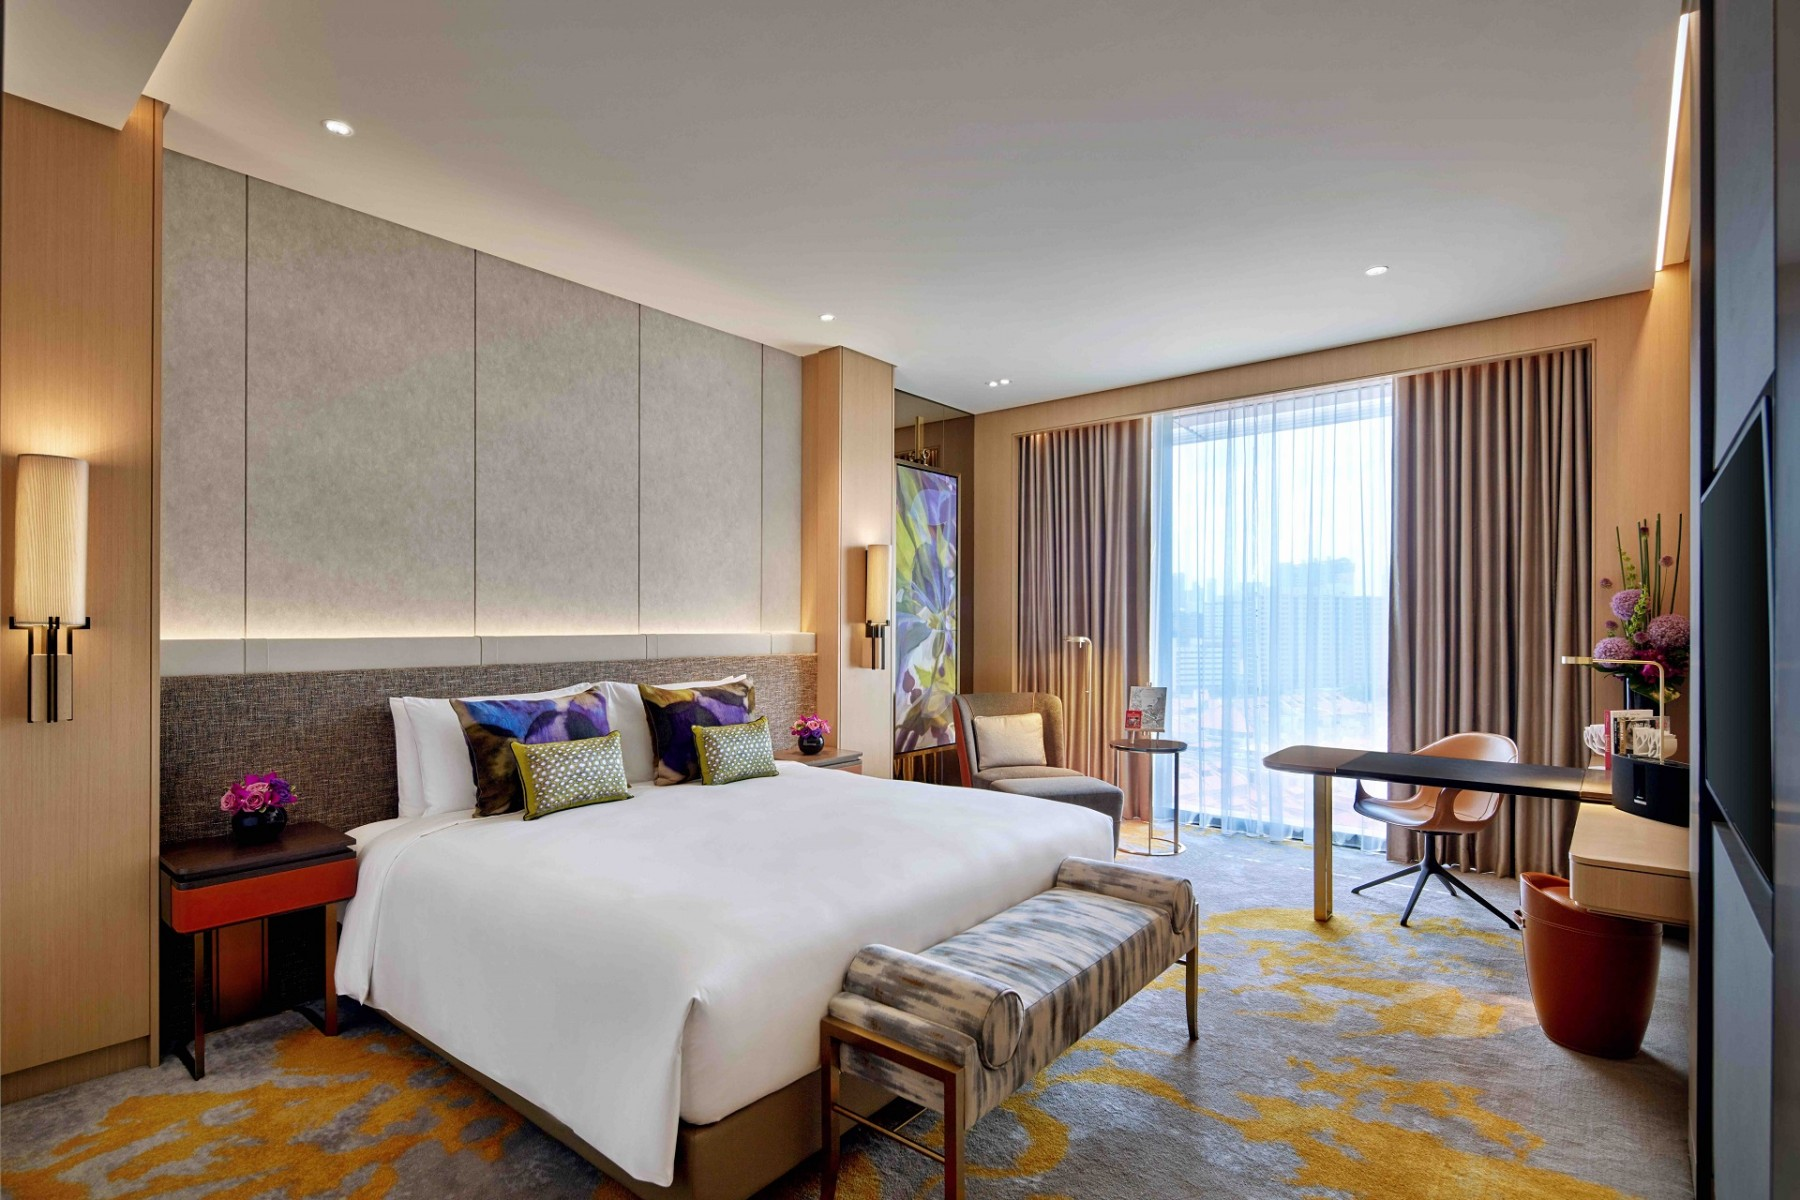 Luxury Hotel in Singapore | Sofitel Singapore City Centre staycation hotel